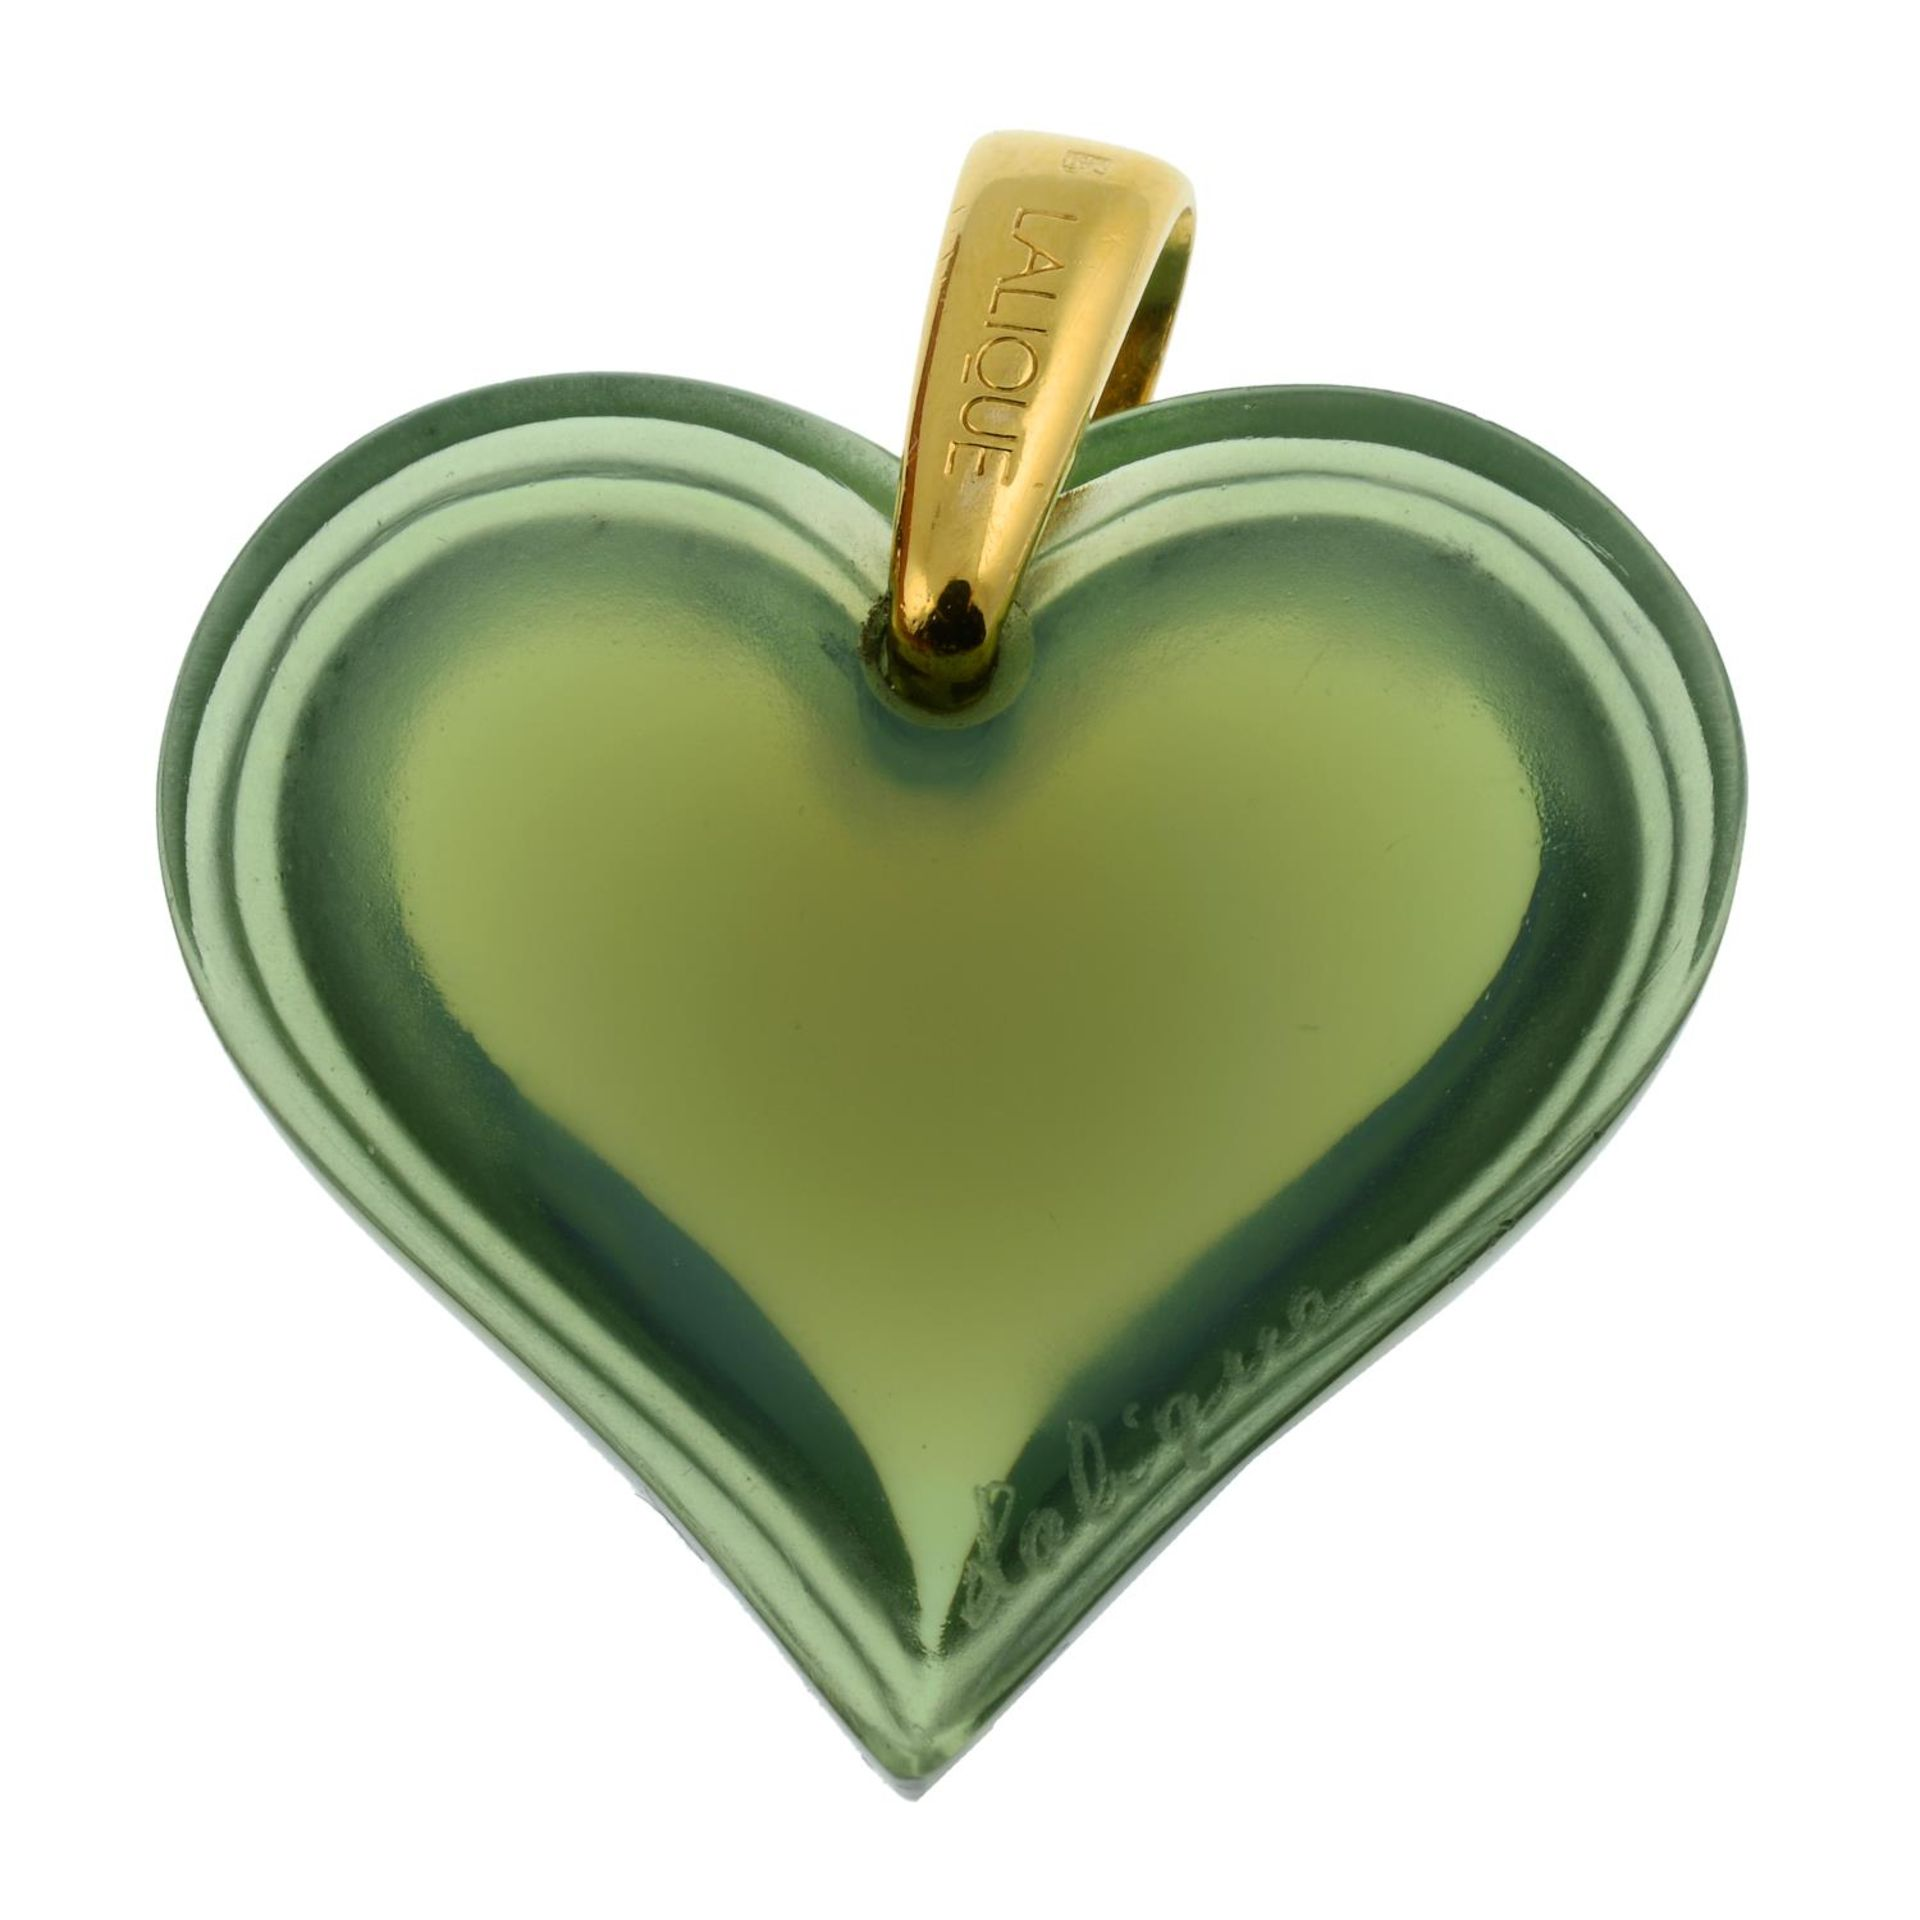 A green glass heart pendant, by Lalique. - Image 2 of 2